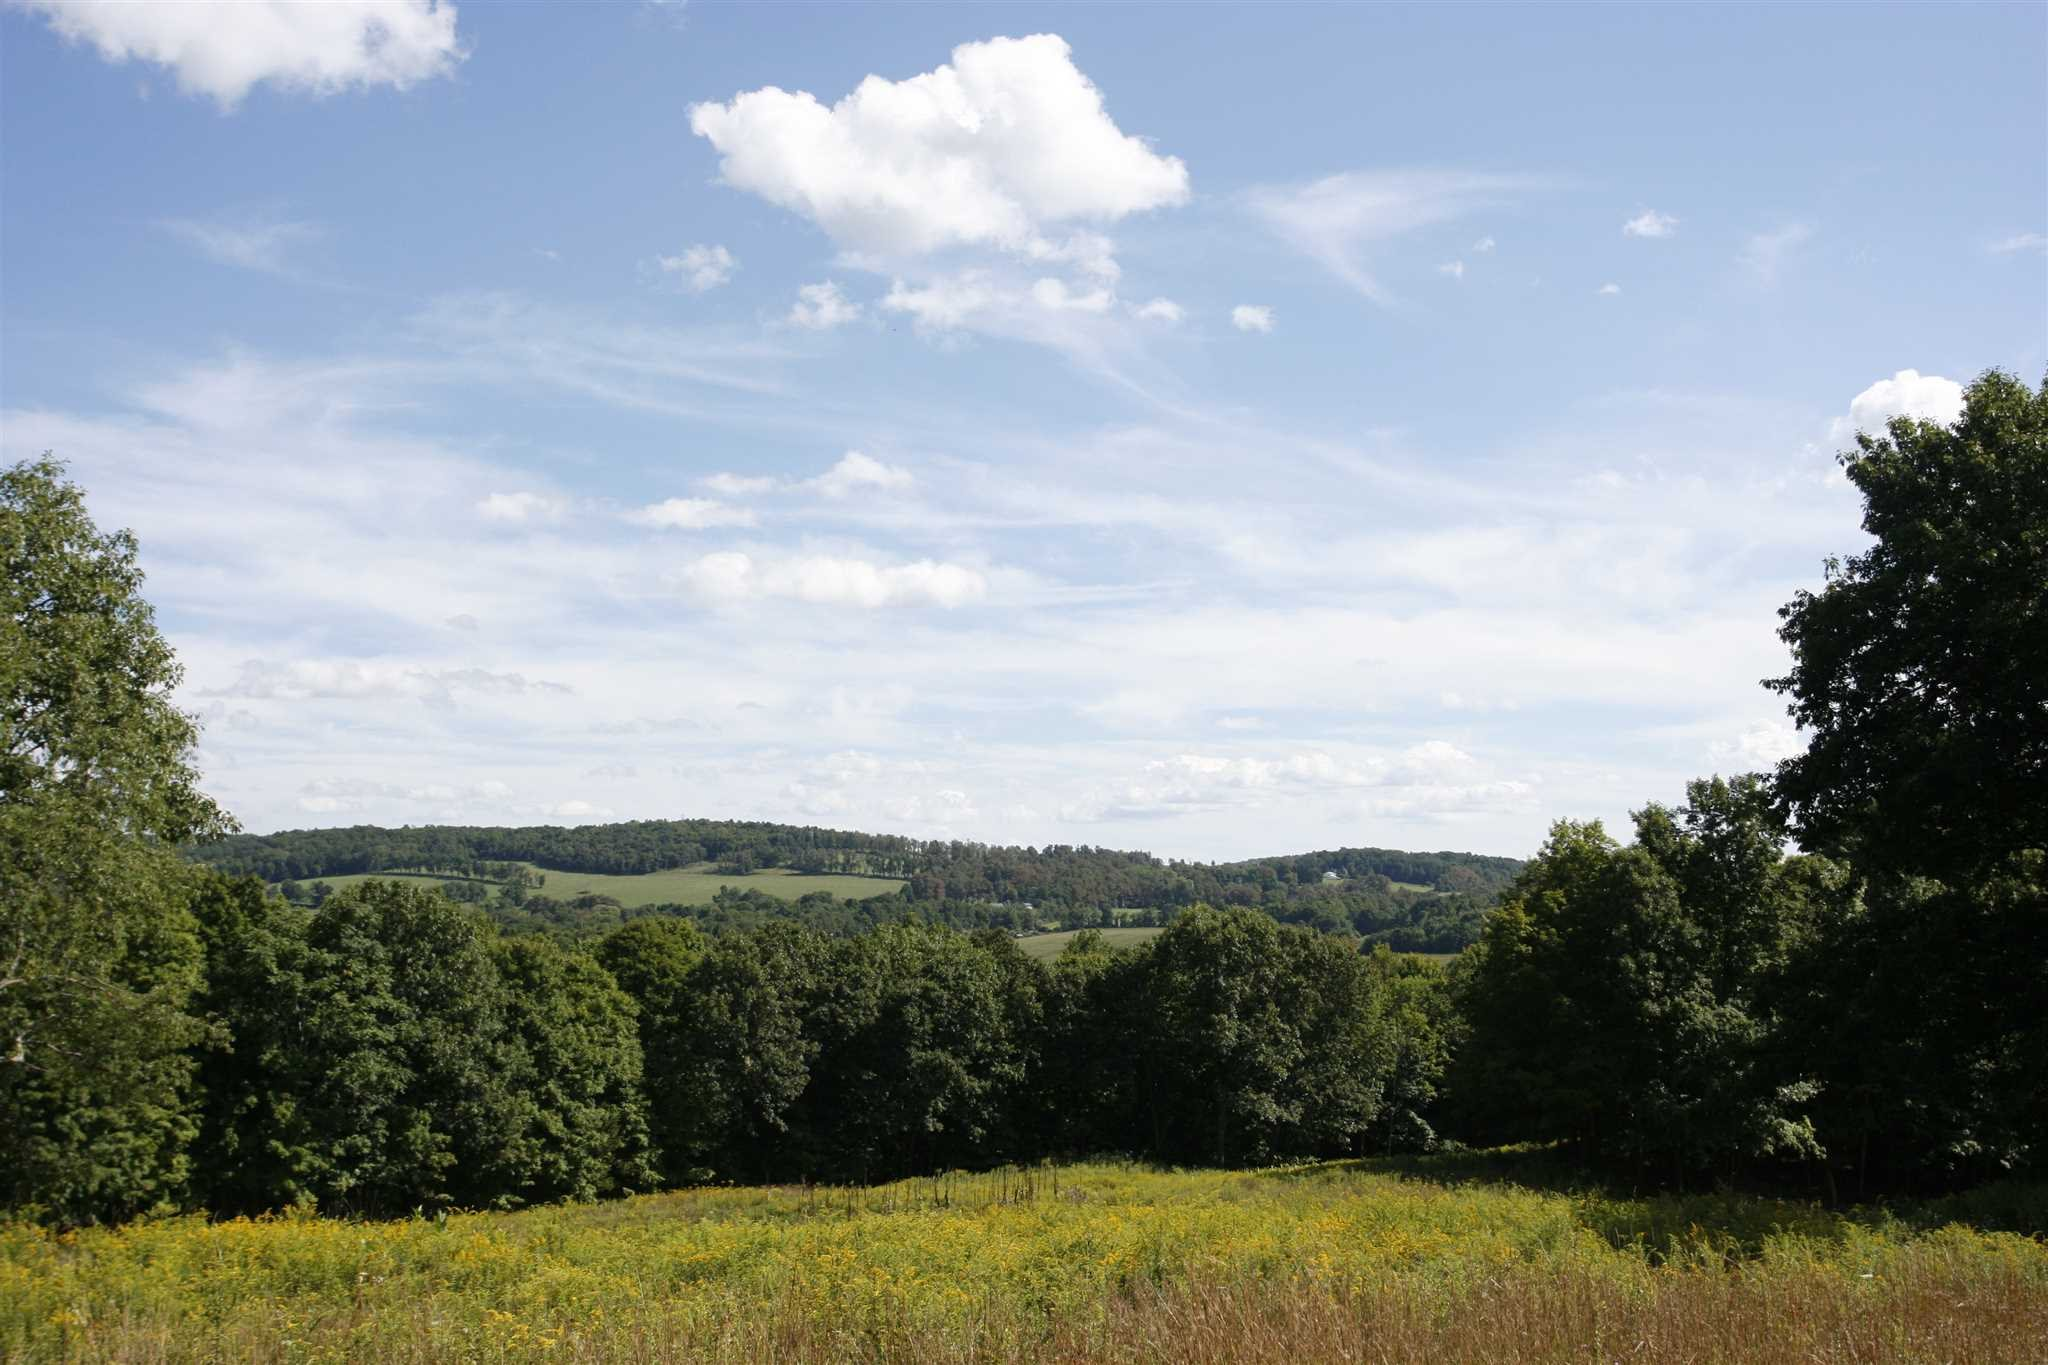 Land for Sale at HUNNS LAKE ROAD HUNNS LAKE ROAD Stanfordville, New York 12581 United States